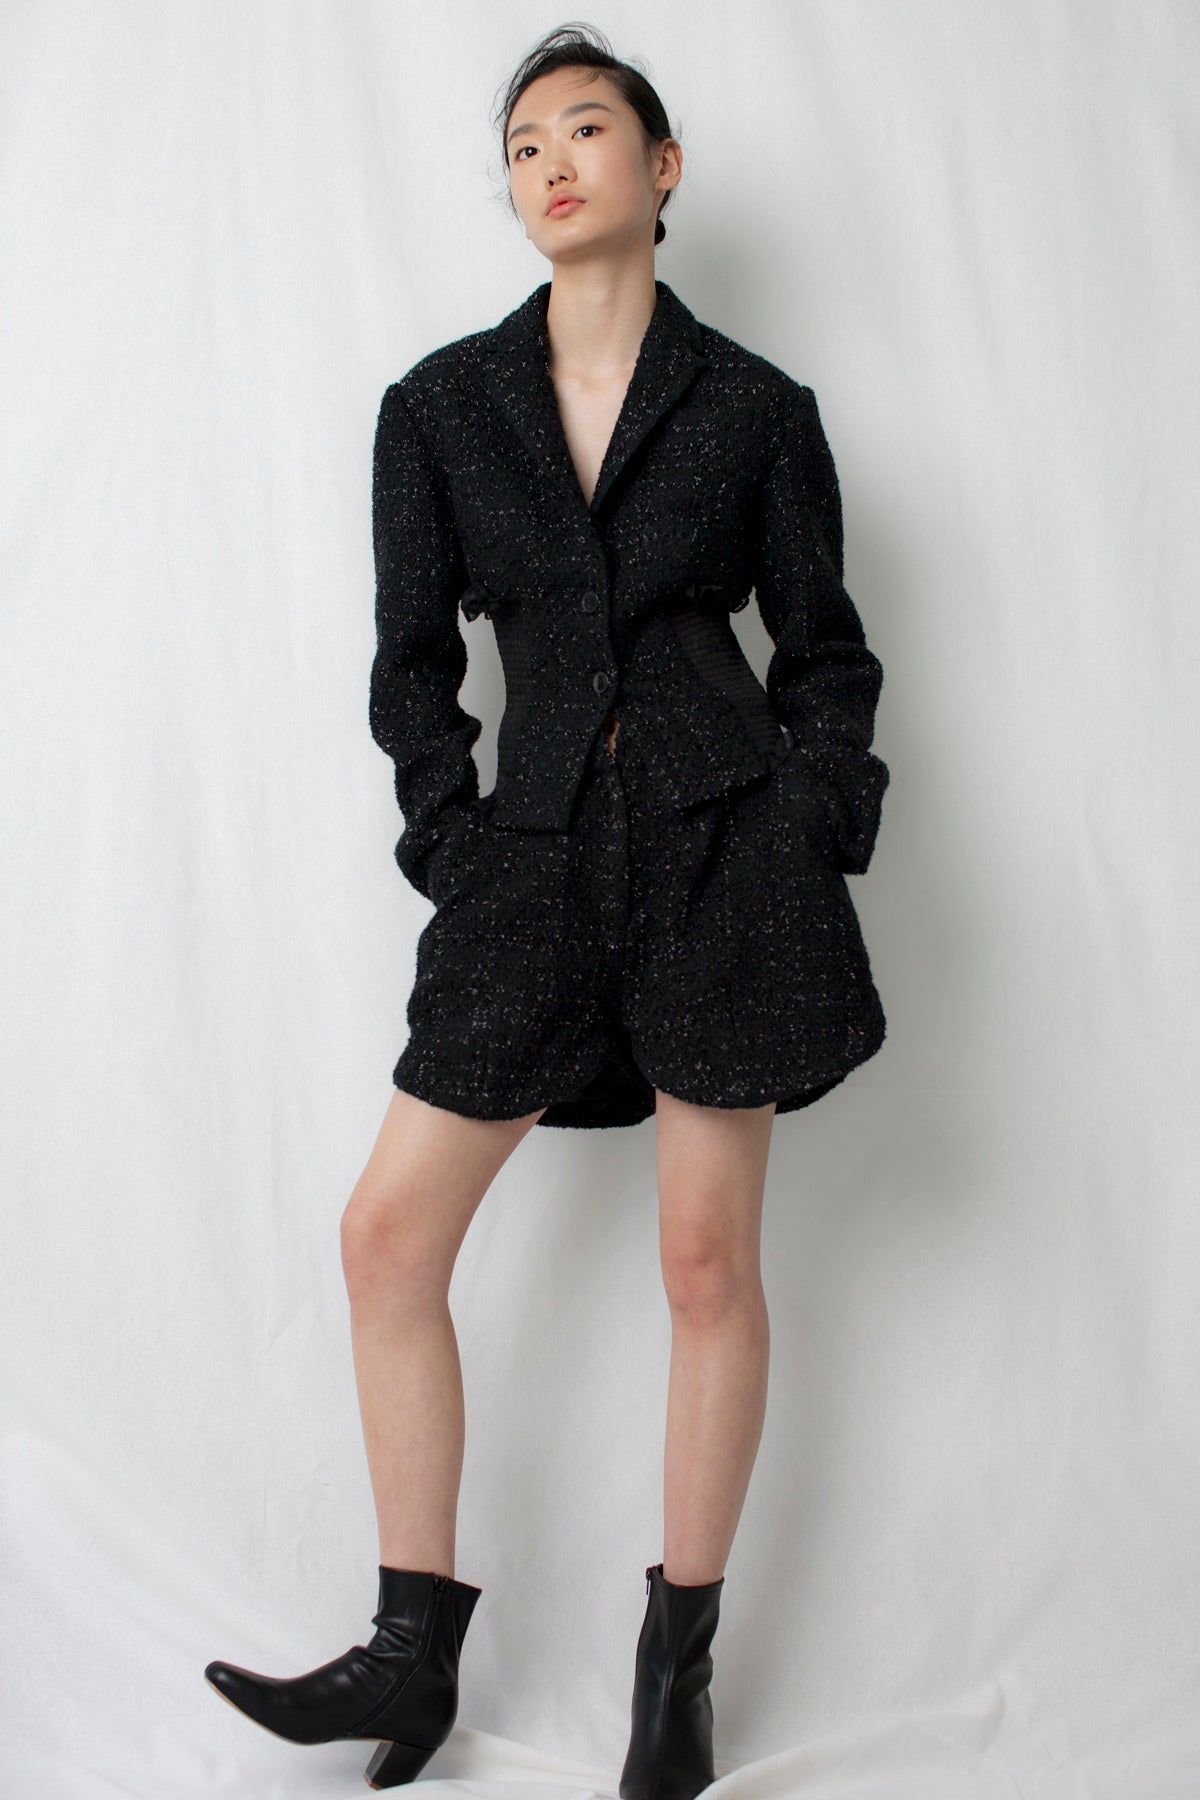 Tulipa Tweed Shorts in Black